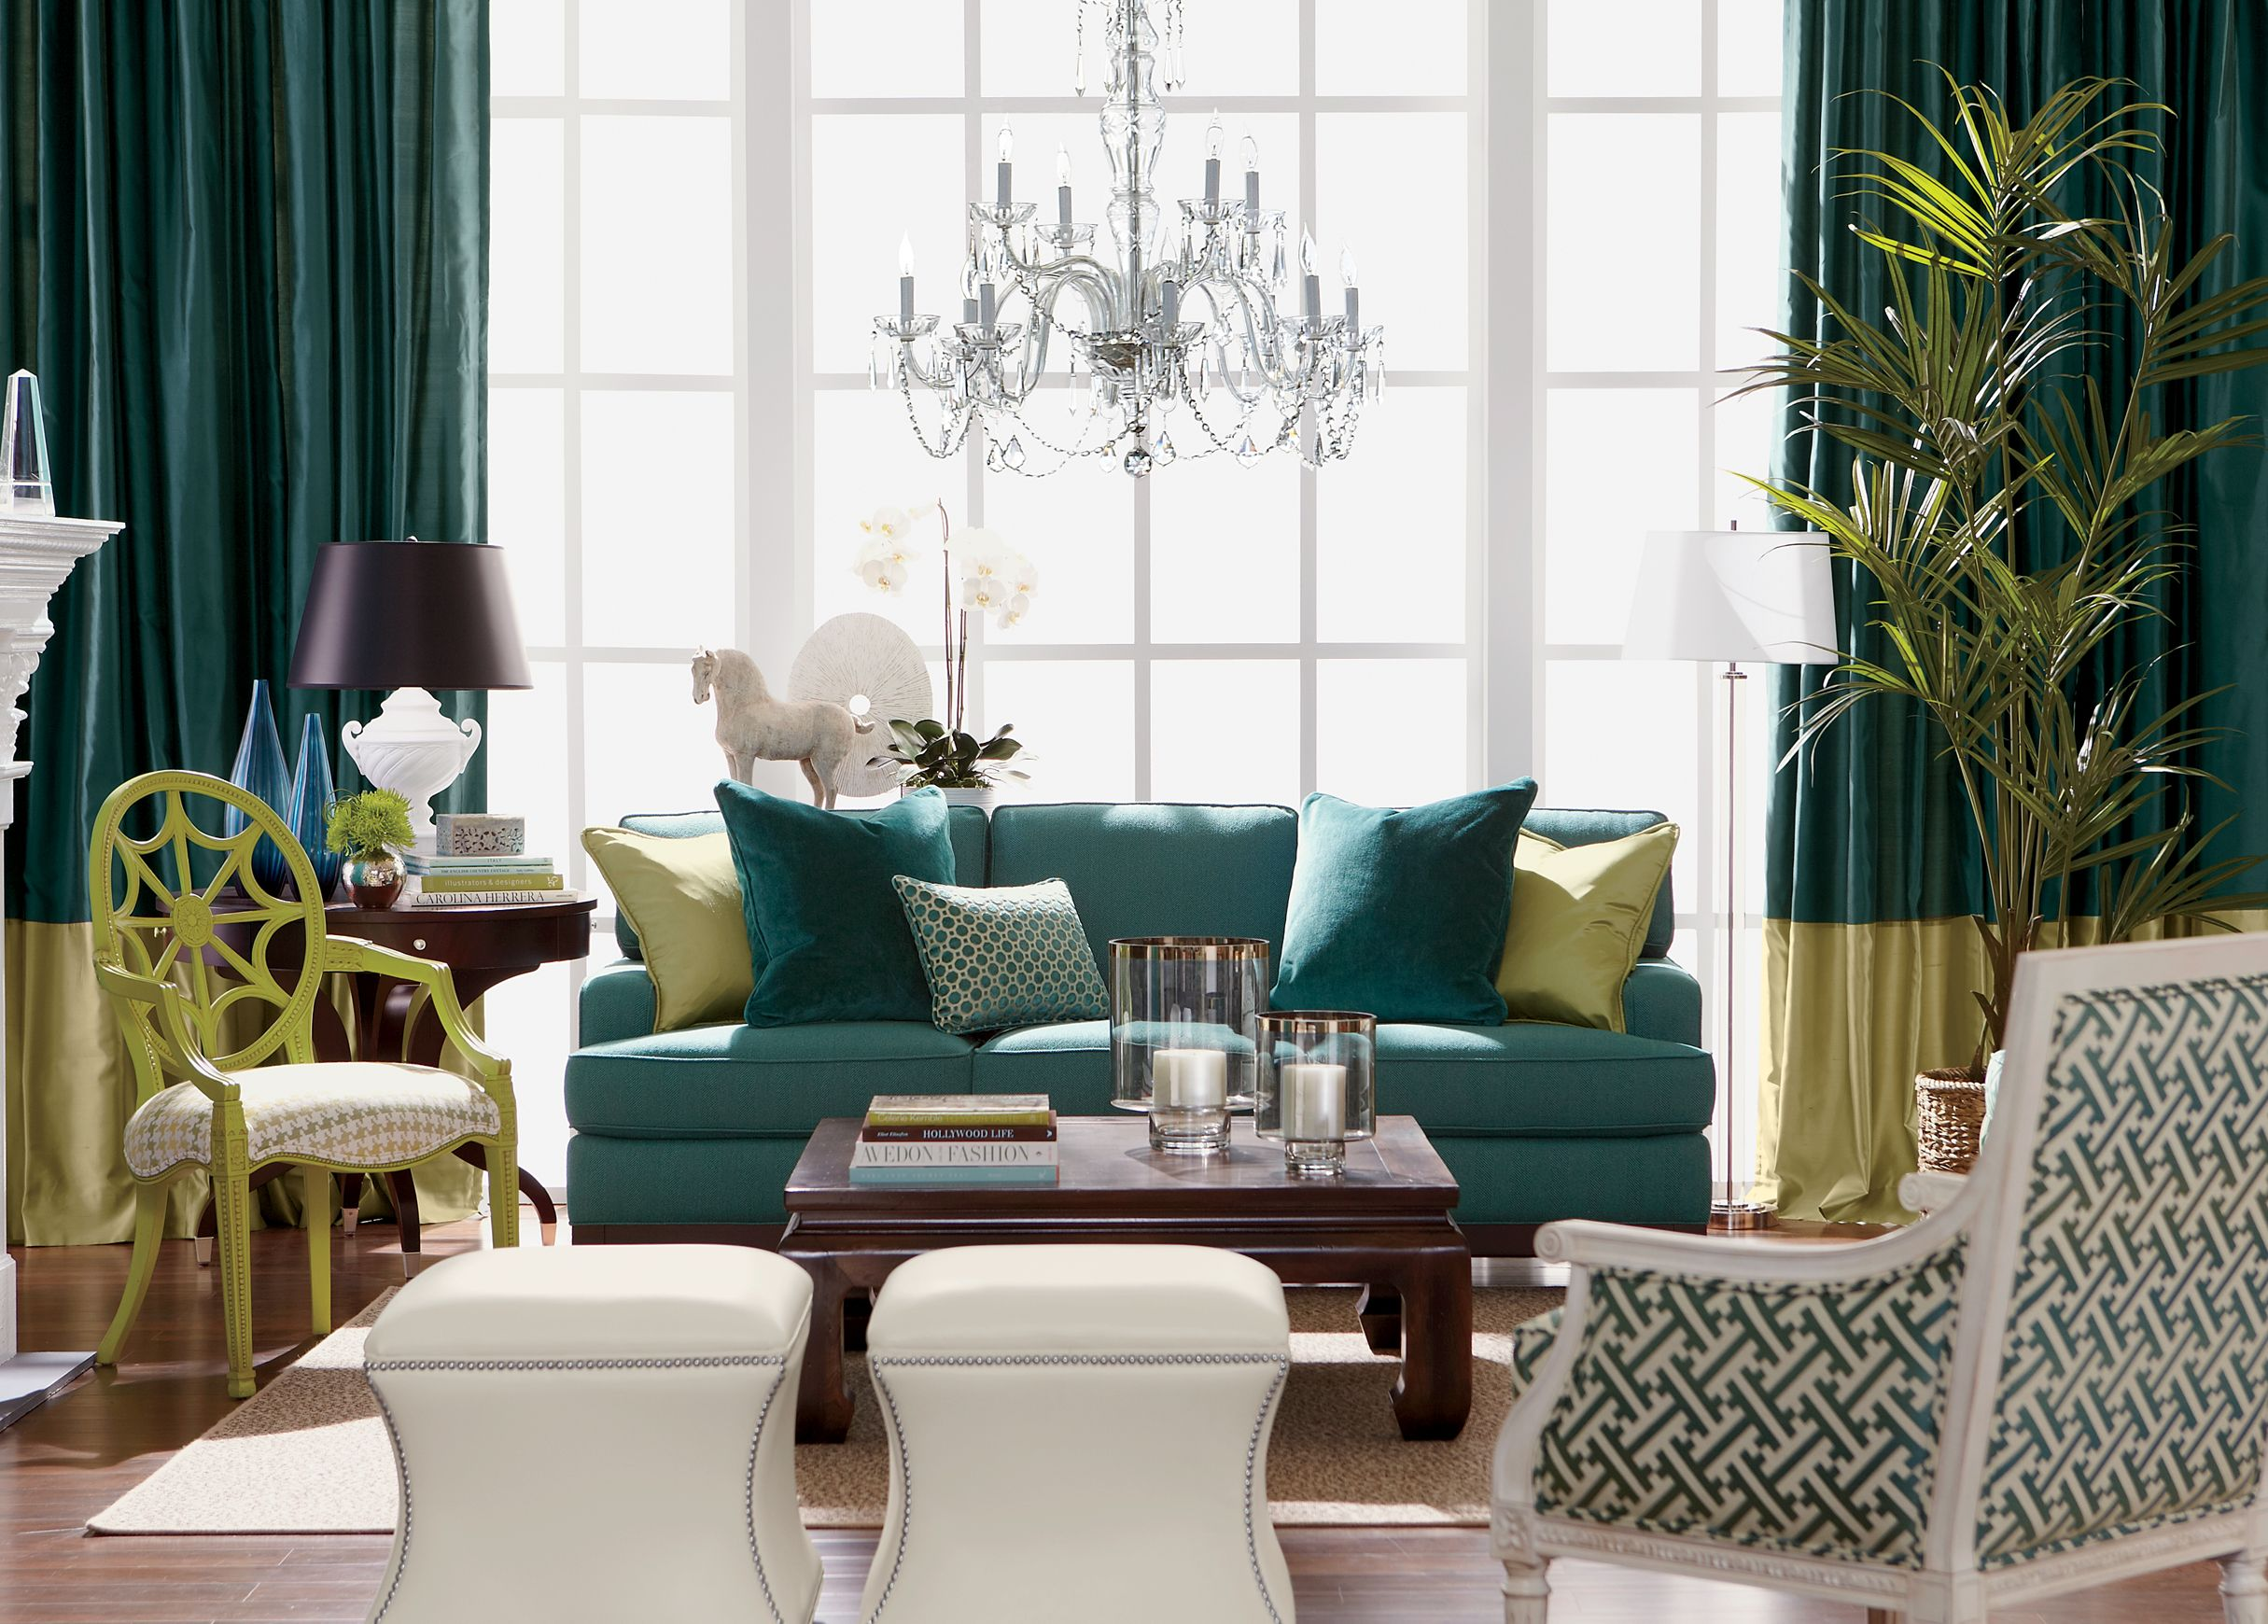 color cabinet chandelier curtain glossy cushions carpet painting concepts amazing full sofa teal arrangement assorted including size room vases also furniture table of living best